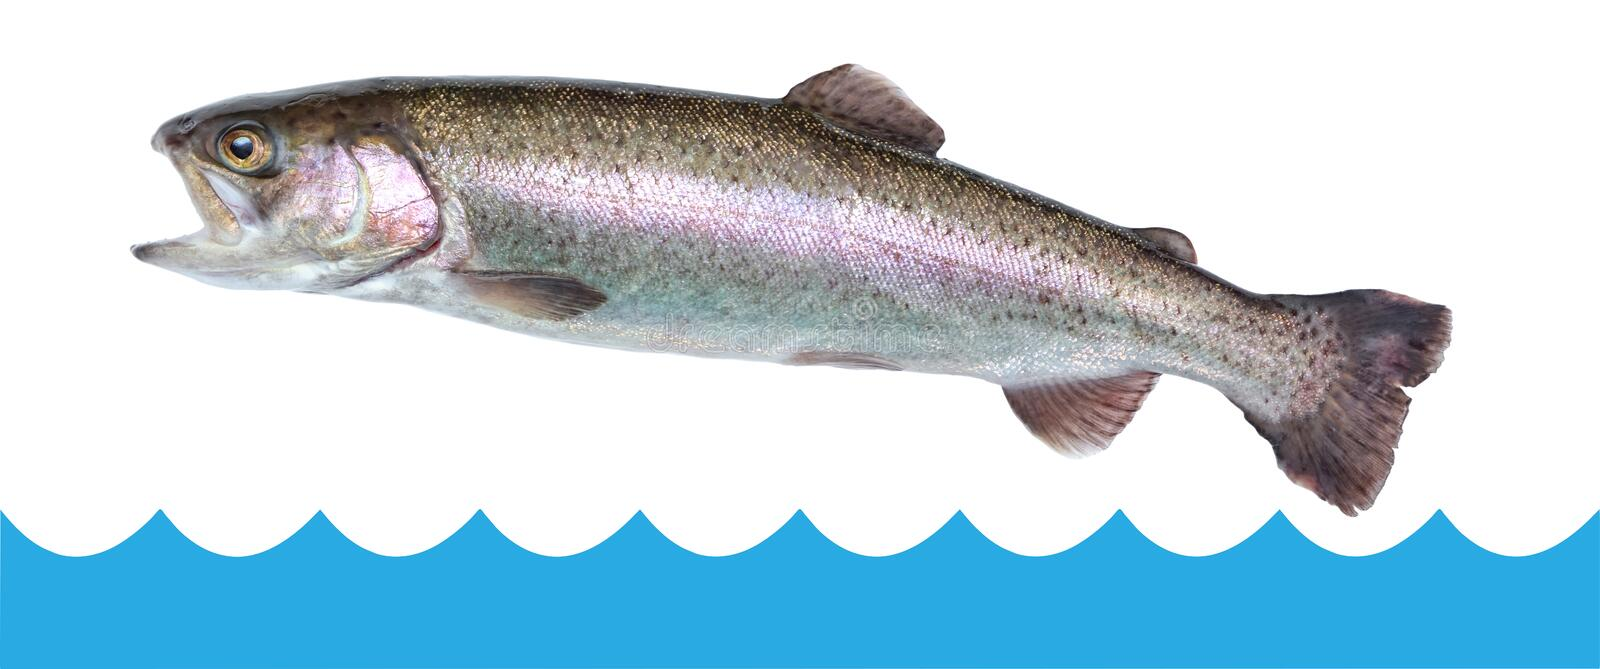 Fish trout jumping out of the water isolated, white background royalty free stock photo